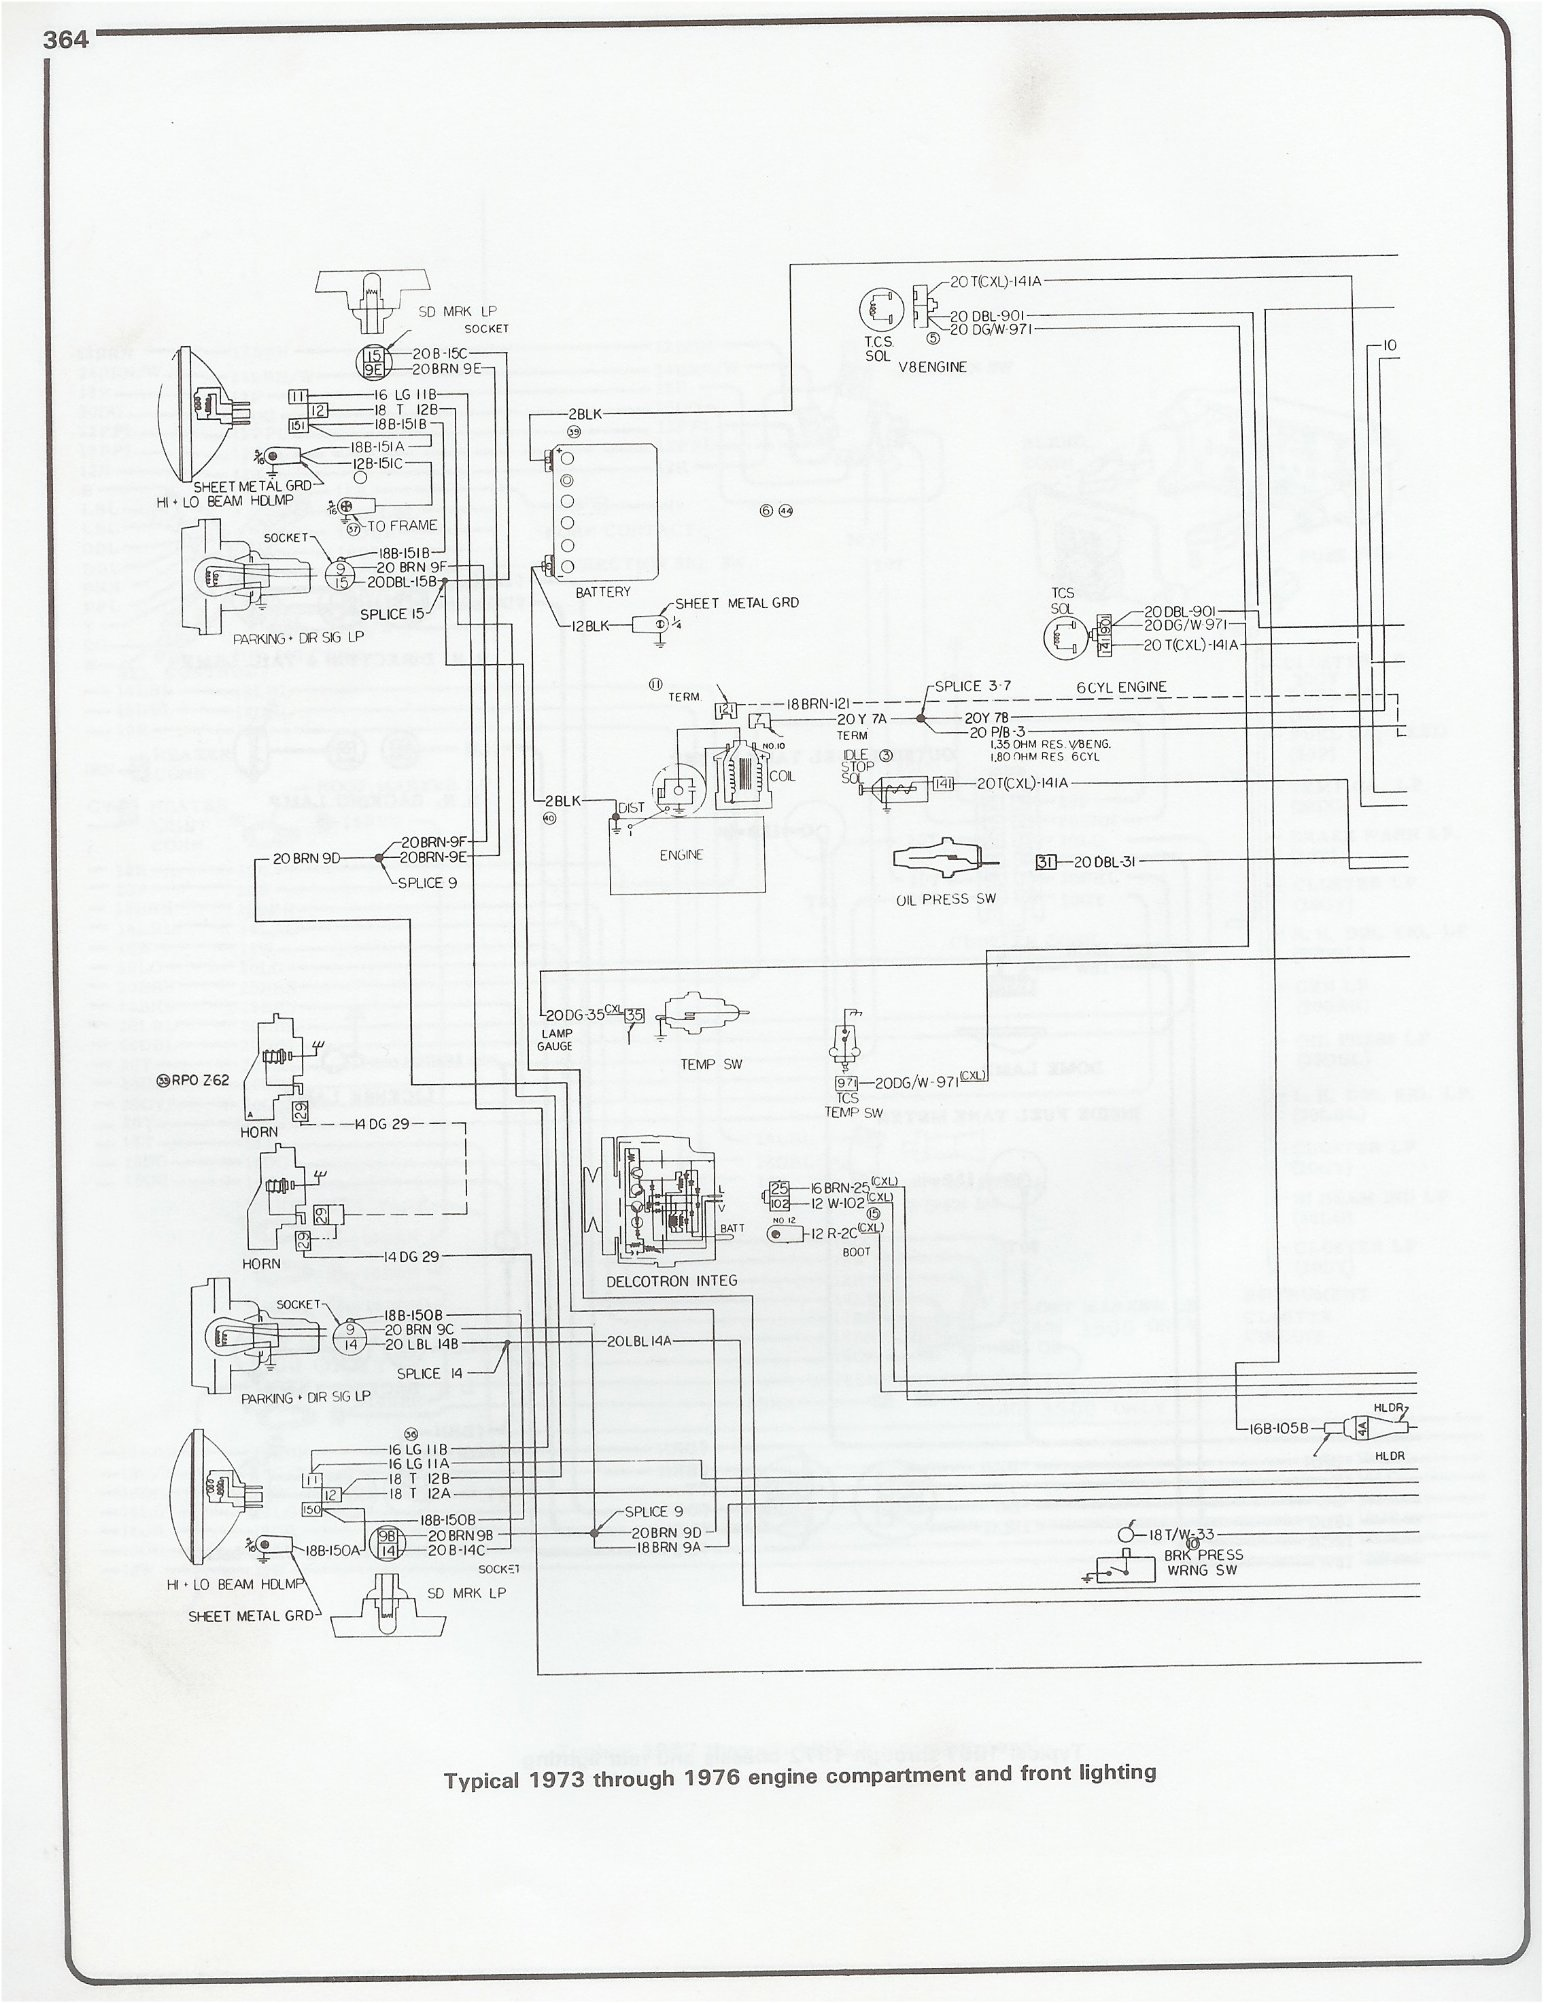 73 76_eng_frt_light complete 73 87 wiring diagrams  at webbmarketing.co